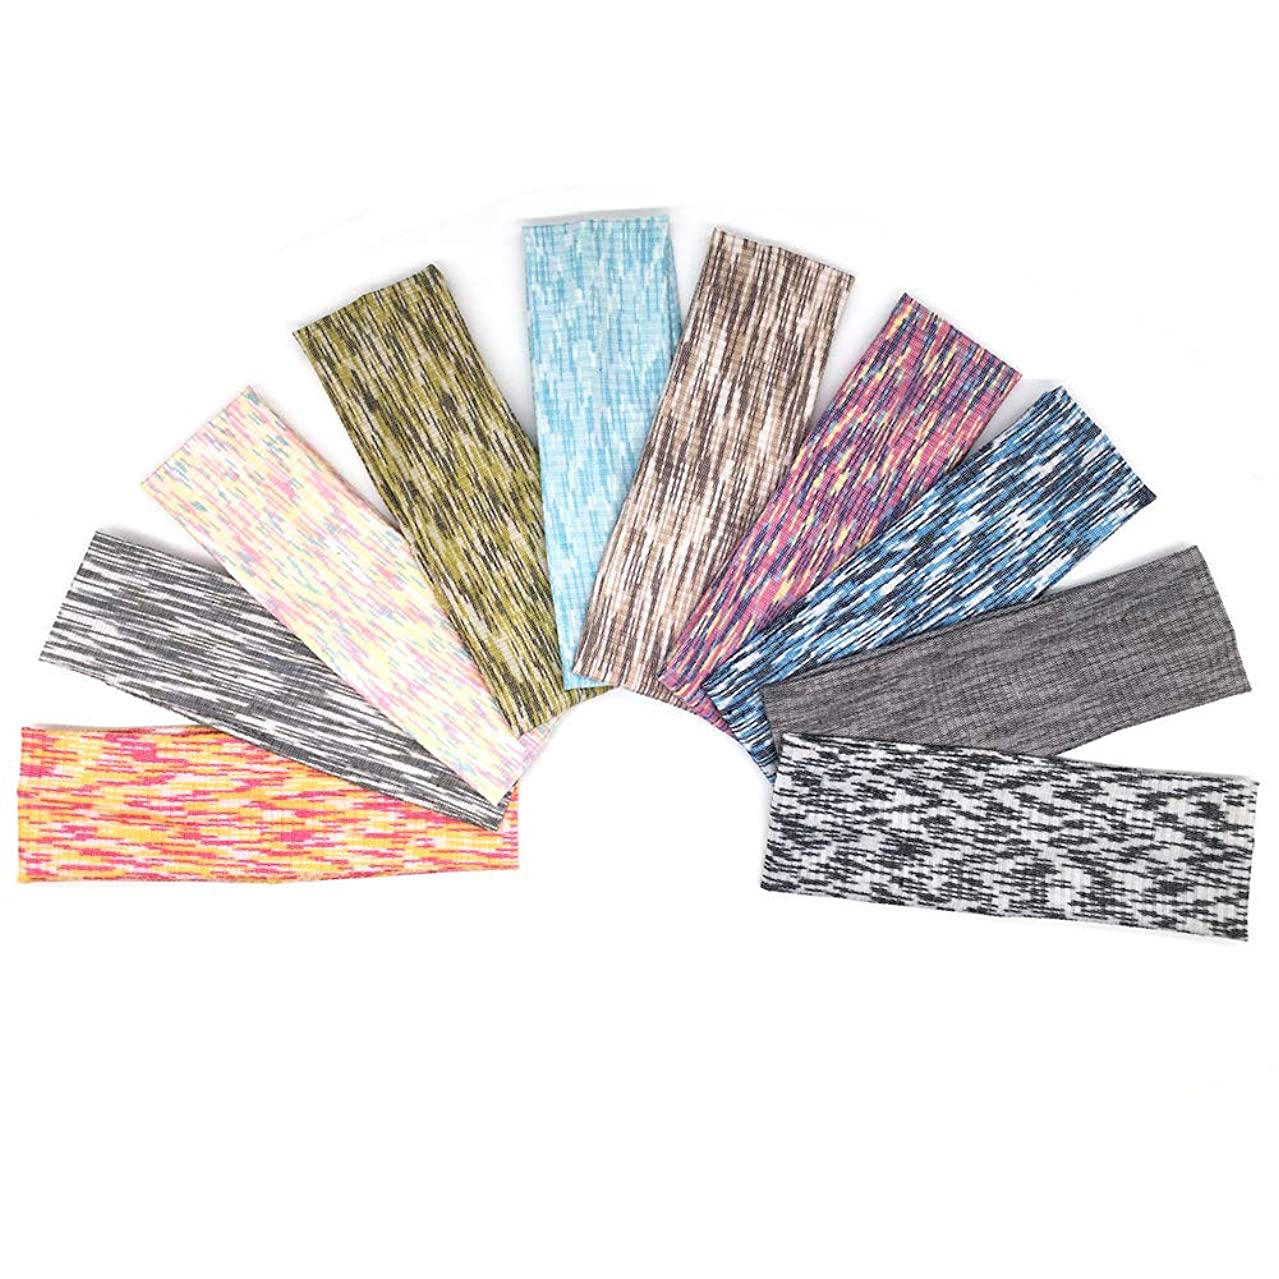 ransiy 10 Packs Non Slip Stretch Cotton Headbands Elastic Yoga Sports Hairband For Teens And Adults,Colorful Cotton